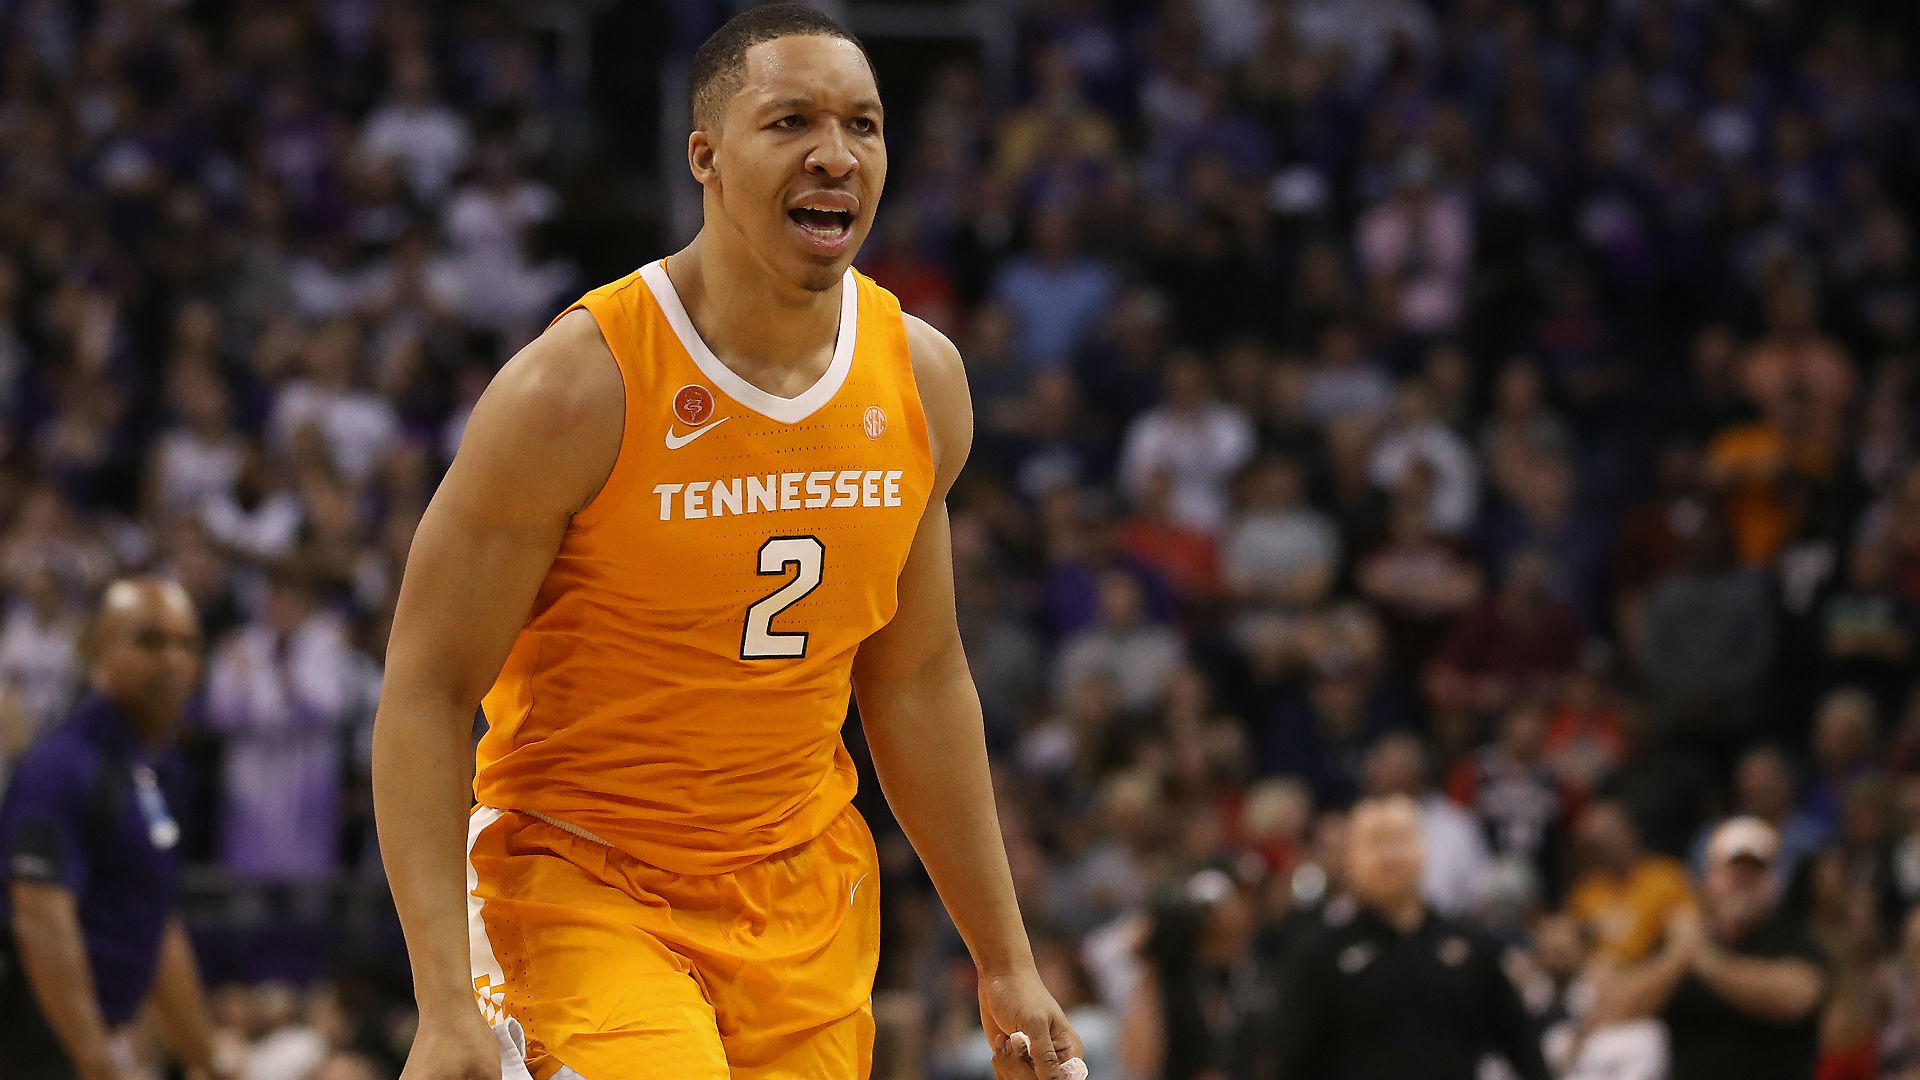 #1 Tennessee Vols Basketball wins overtime thriller at Vanderbilt, 88-83